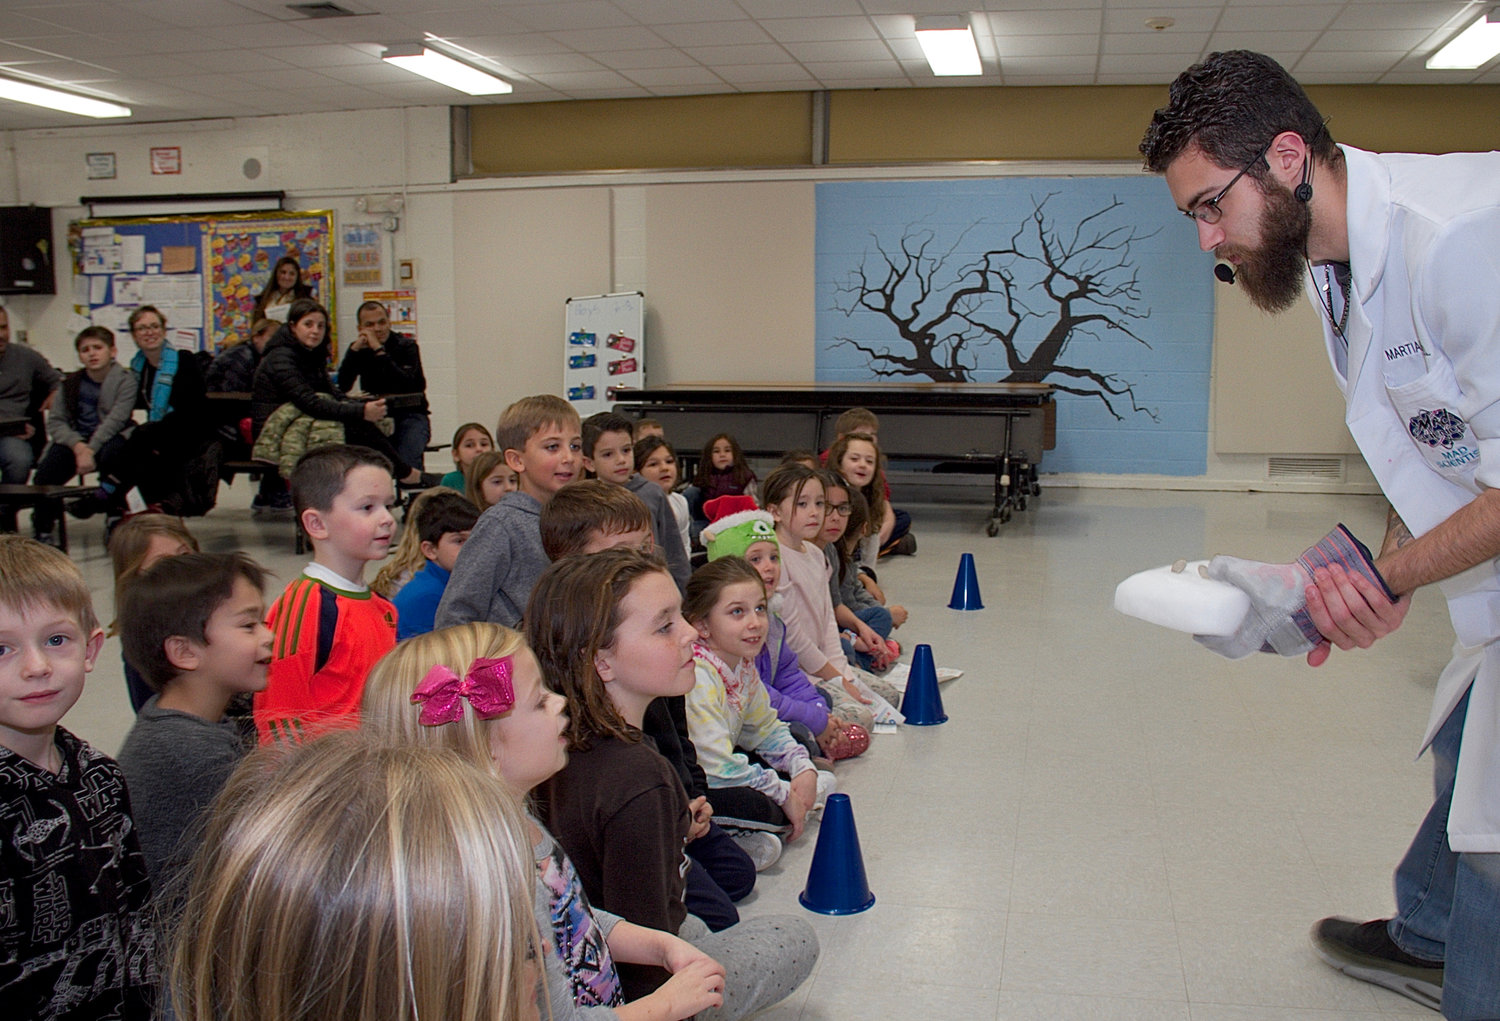 Michael Lopalo, from Mad Science Long Island, shared some of his secret experiments.